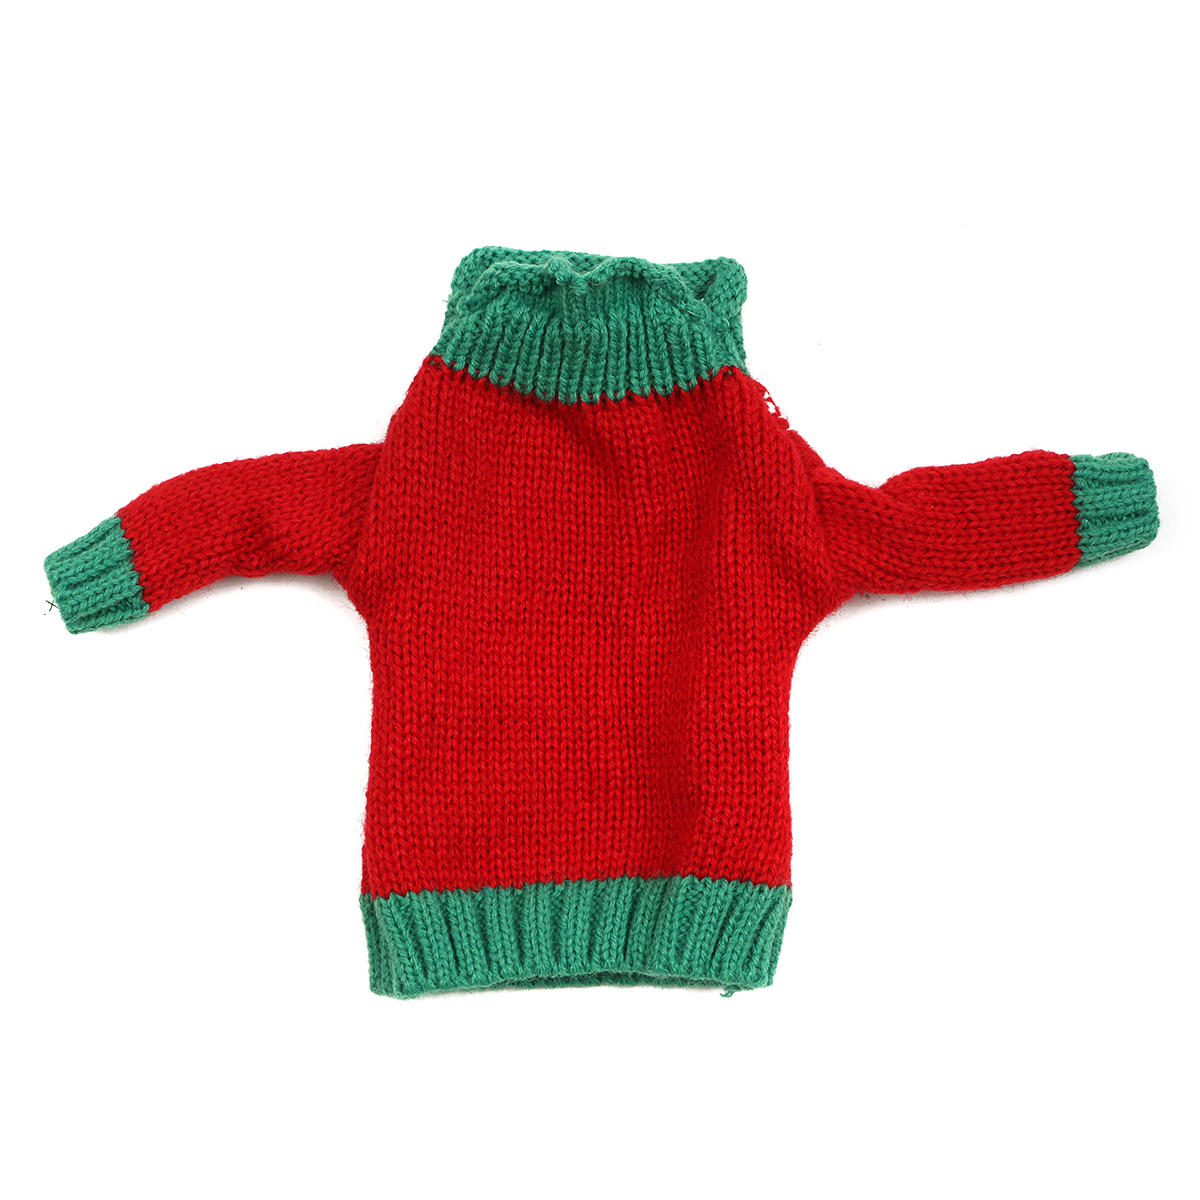 Christmas Knitted Sweater Lid Hat Wine Bottle Cover Wrap Bag Xmas Decoration - 11